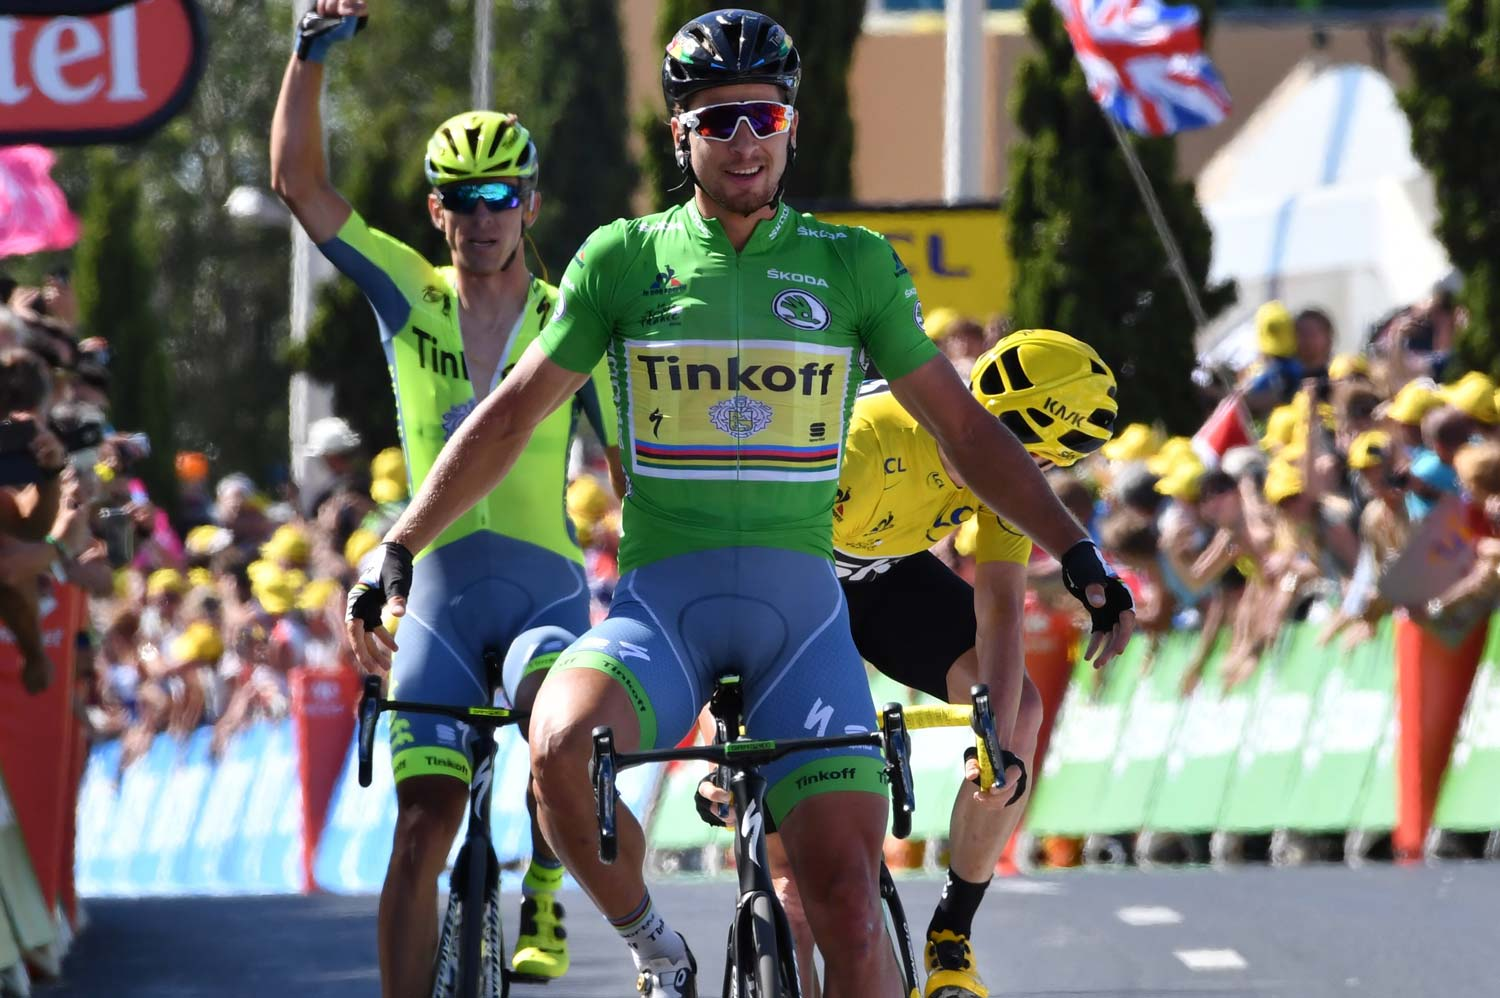 The green jersey ahead of the yellow jersey... Sagan and Froome at the finish of stage 11 in Montpellier. Photo: Graham Watson